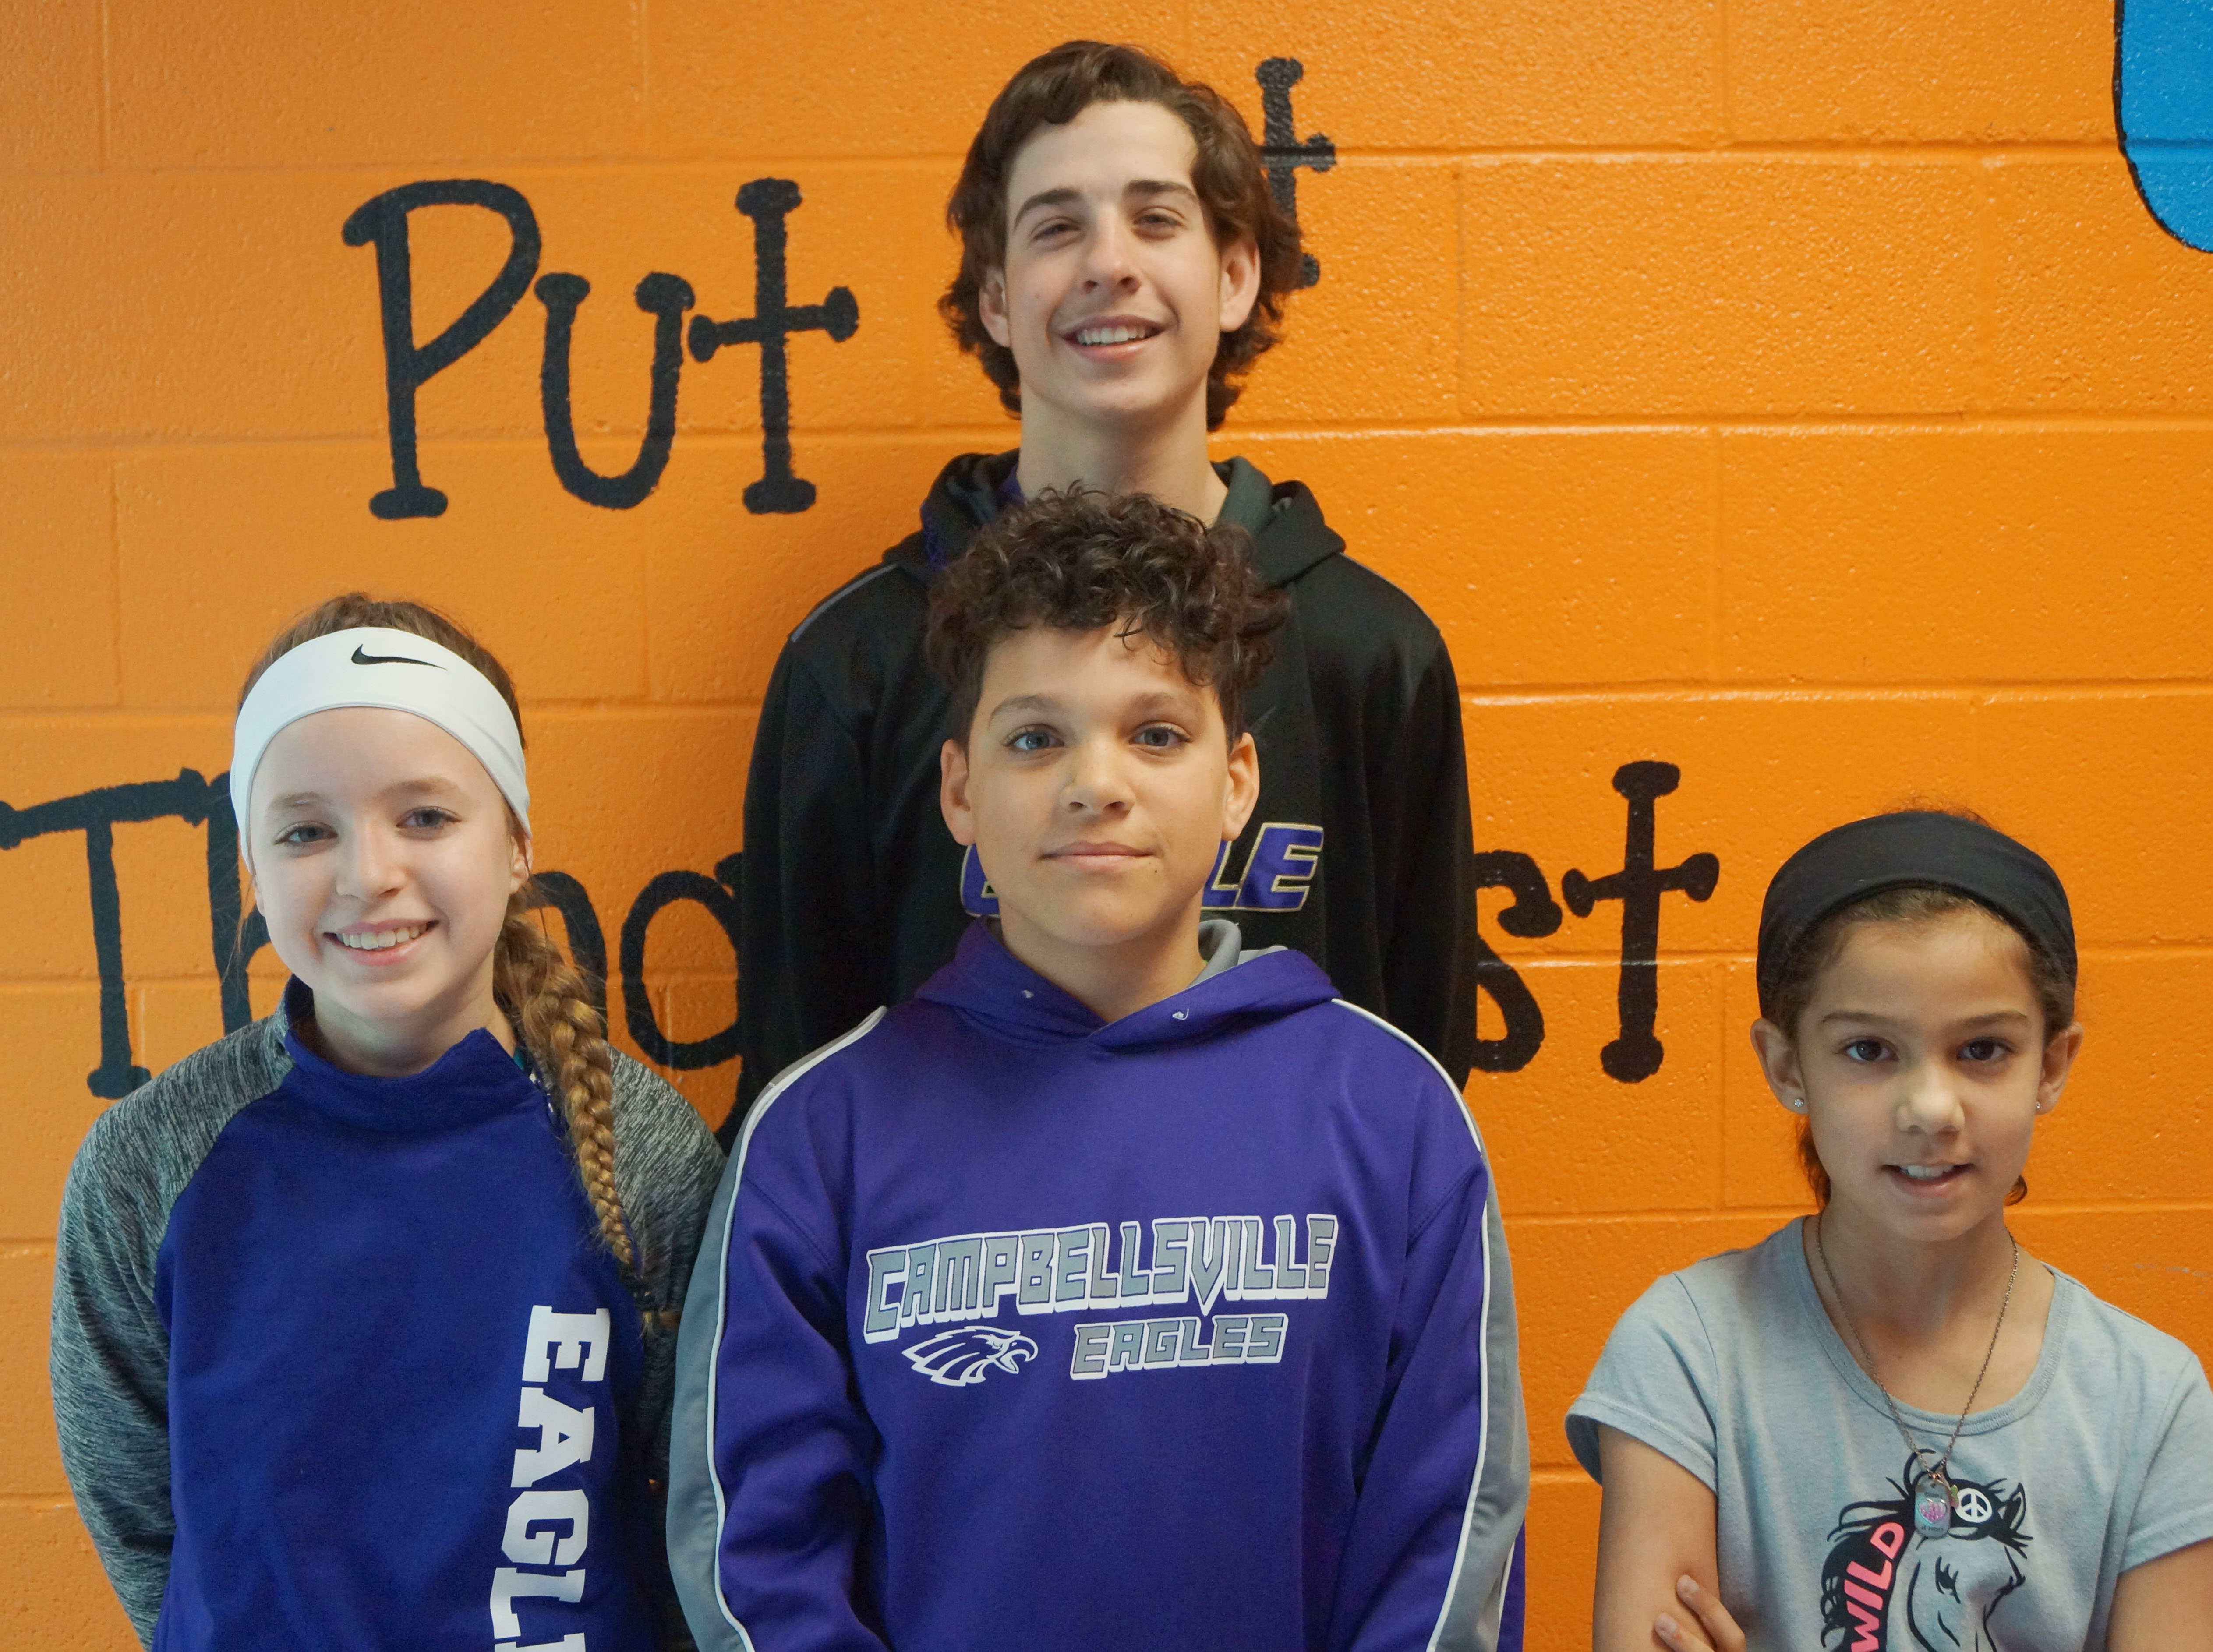 From left are seventh-grader Rylee Petett, sixth-grader Kaydon Taylor, eighth-grader John Orberson and fourth-grader Mackenzie Negron. Not pictured is fifth-grader Conner Rinehart.